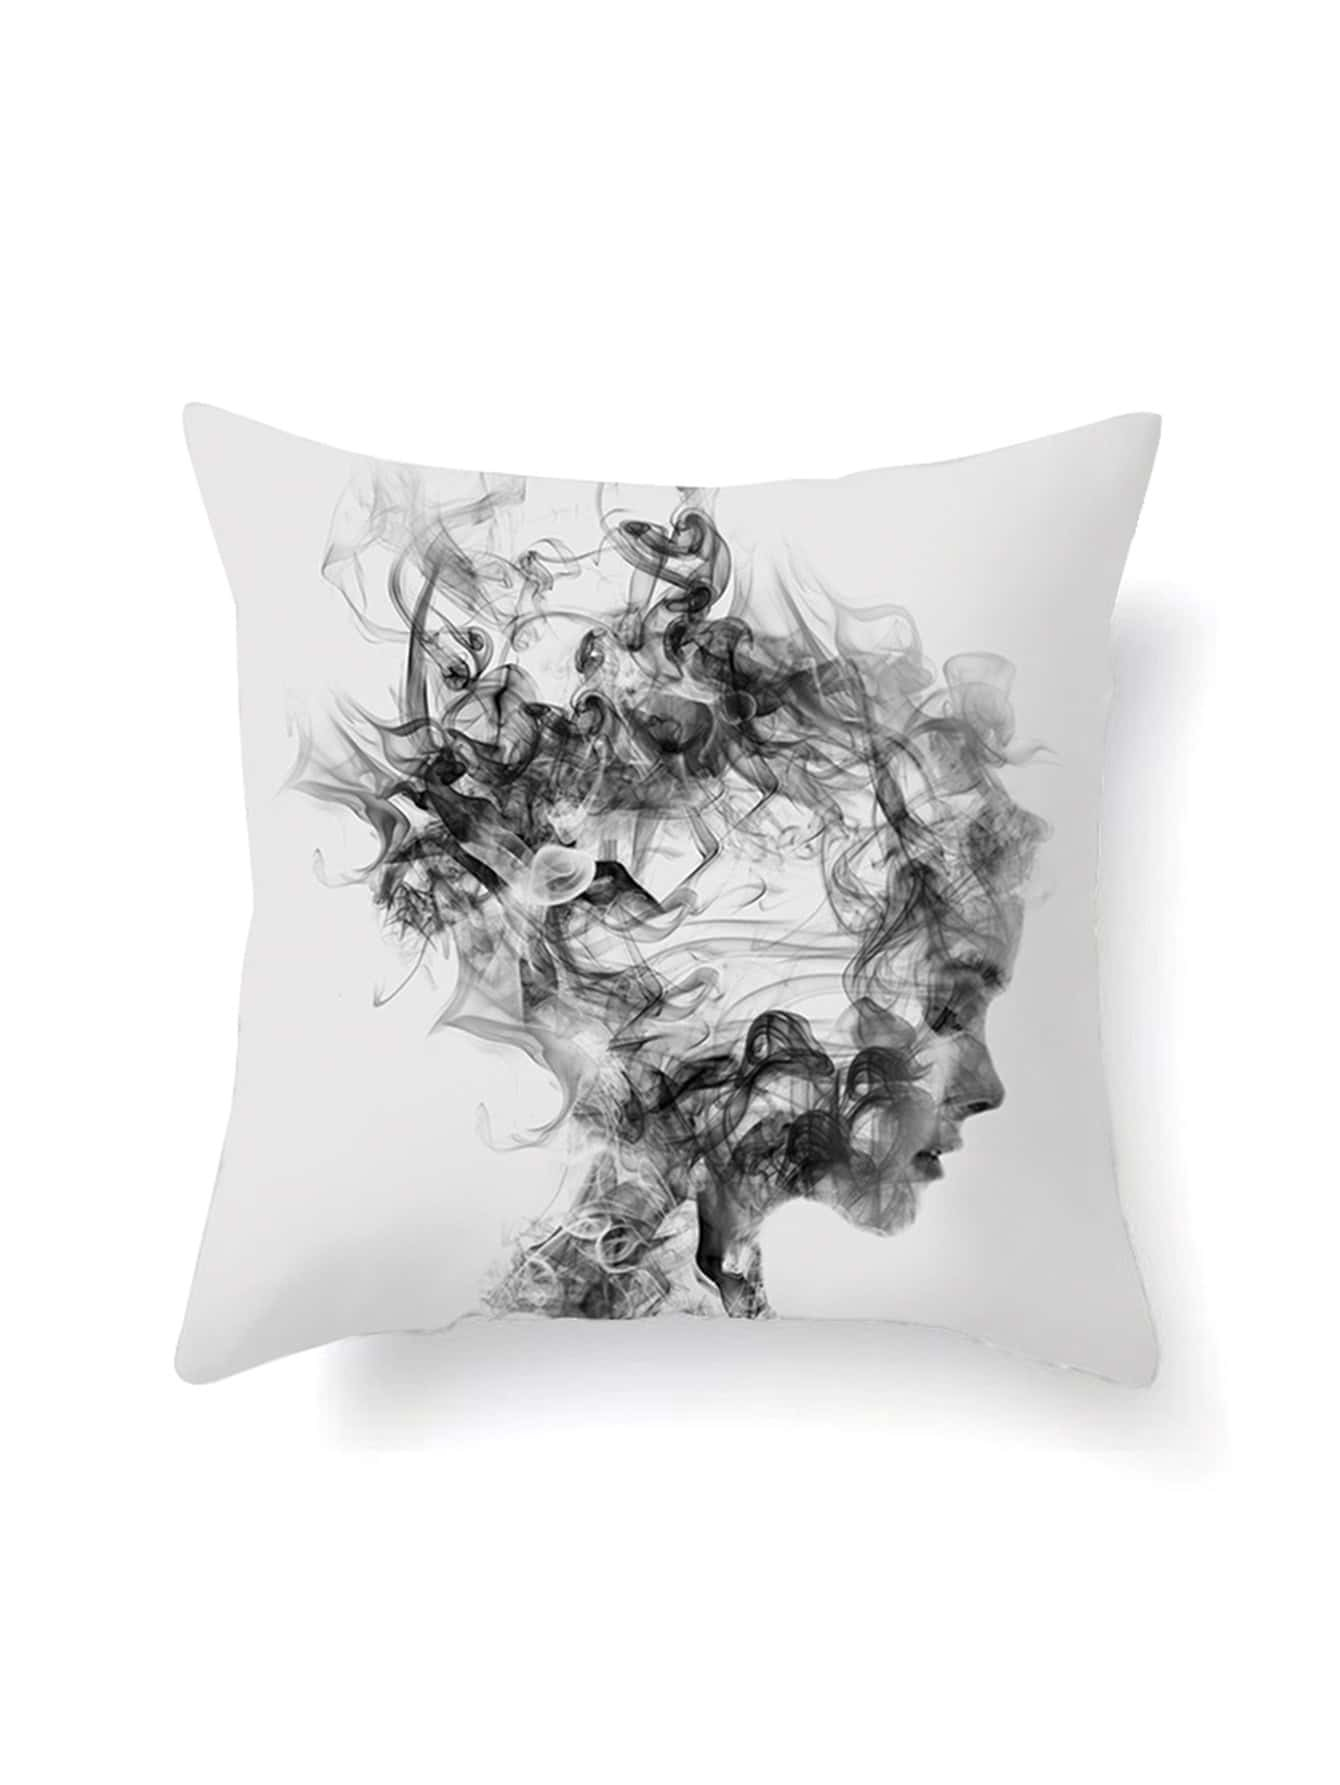 Abstract Girl Print Pillowcase Cover моторное масло mobil 1 5w 50 1 л синтетическое